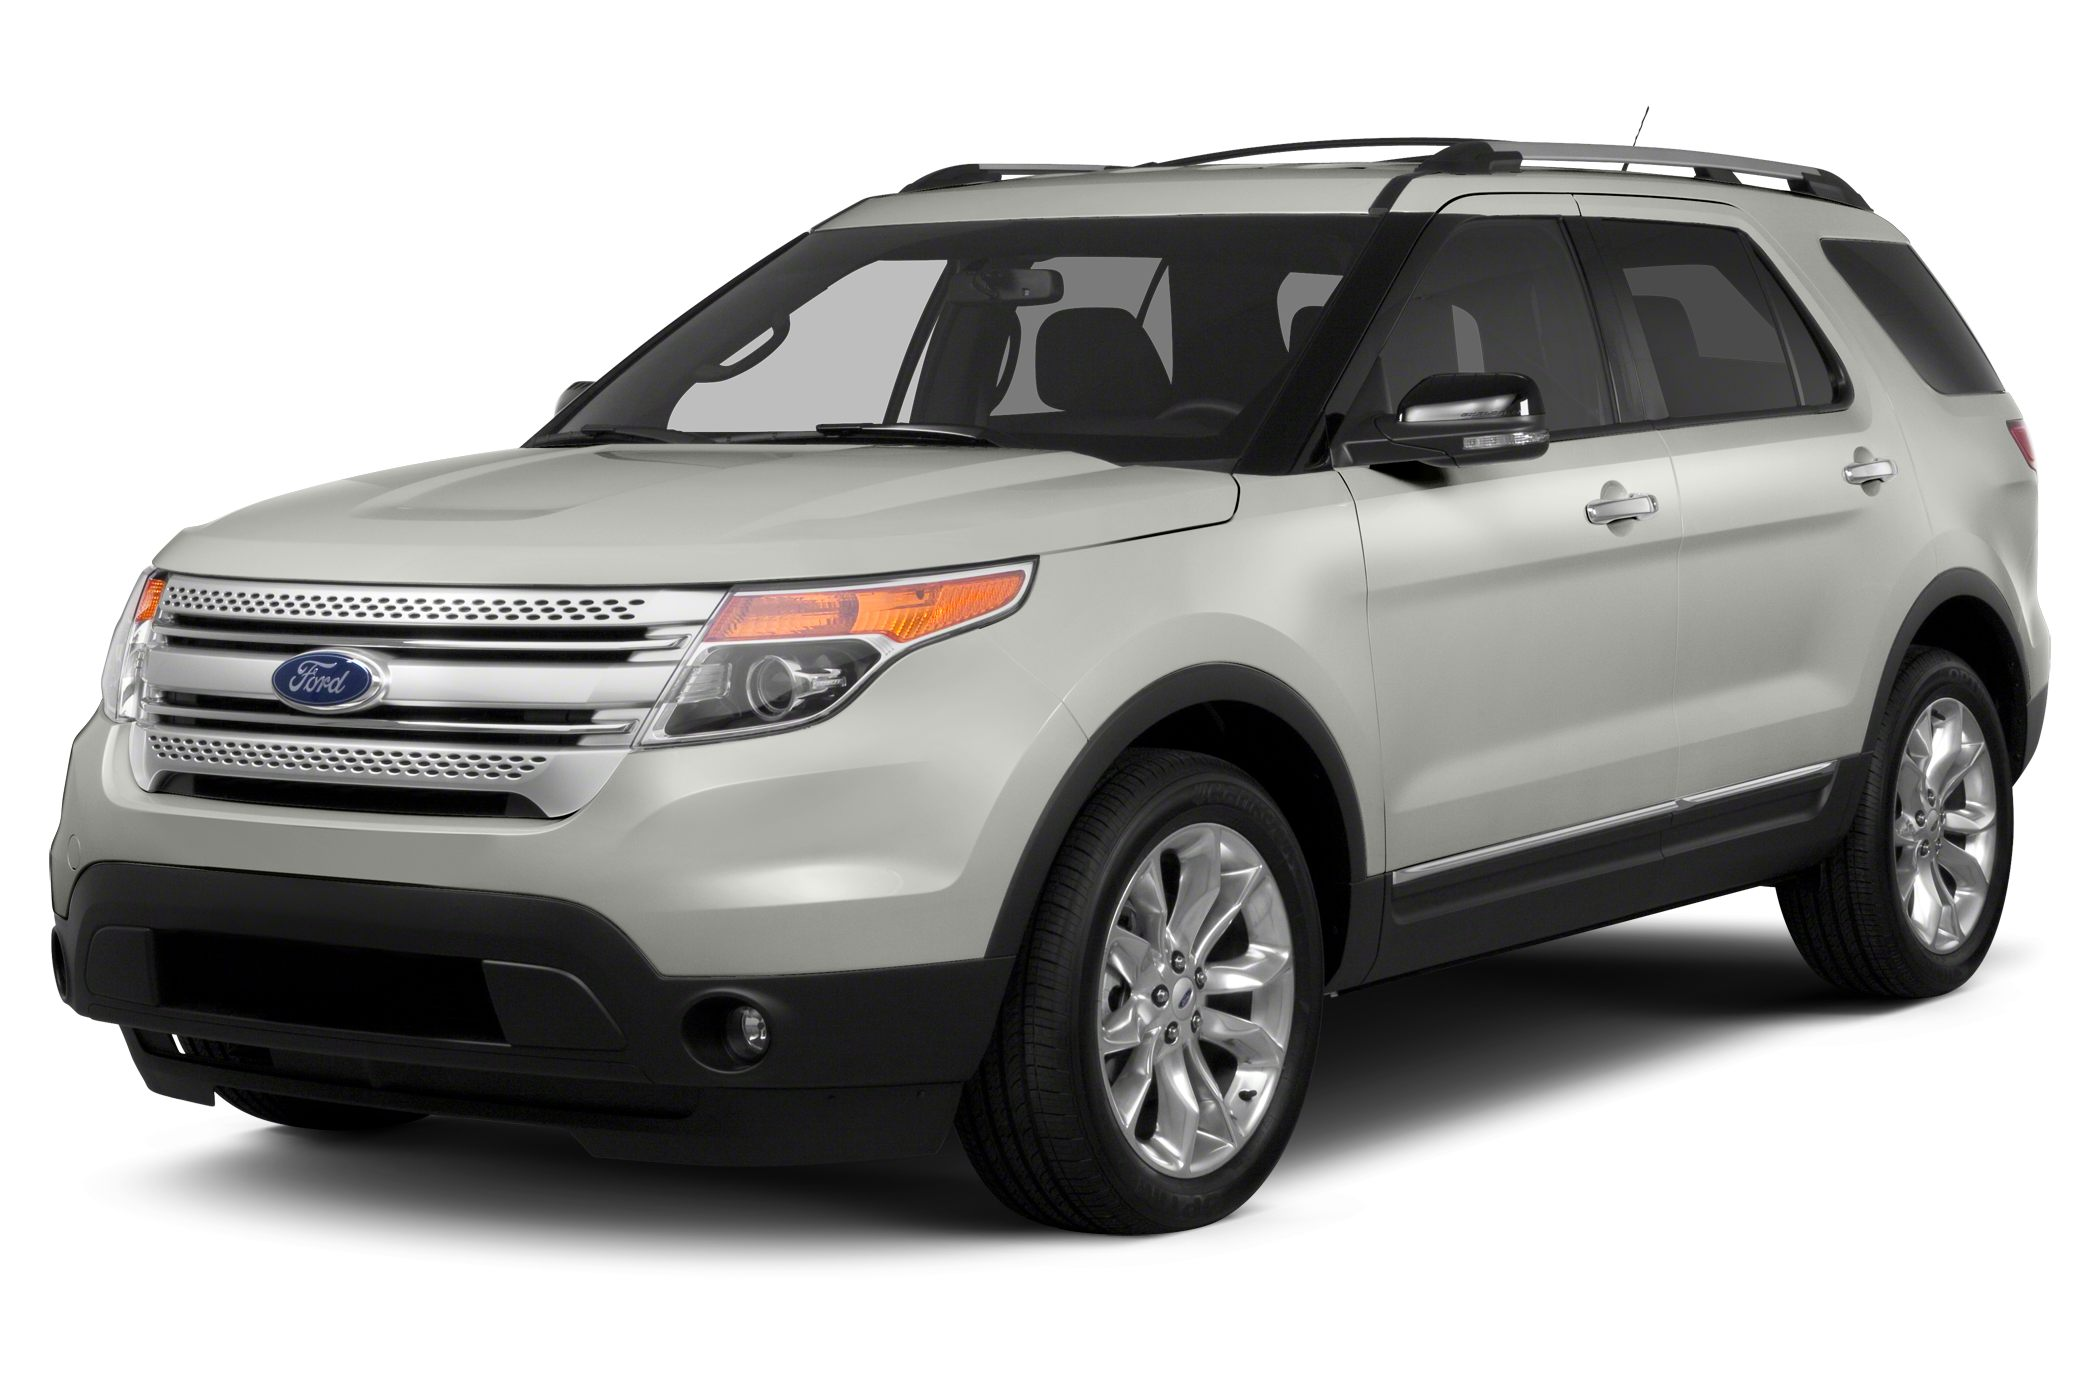 2014 Ford Explorer XLT Ford Certified LOW MILES - 23060 PRICED TO MOVE 3000 below NADA Retail